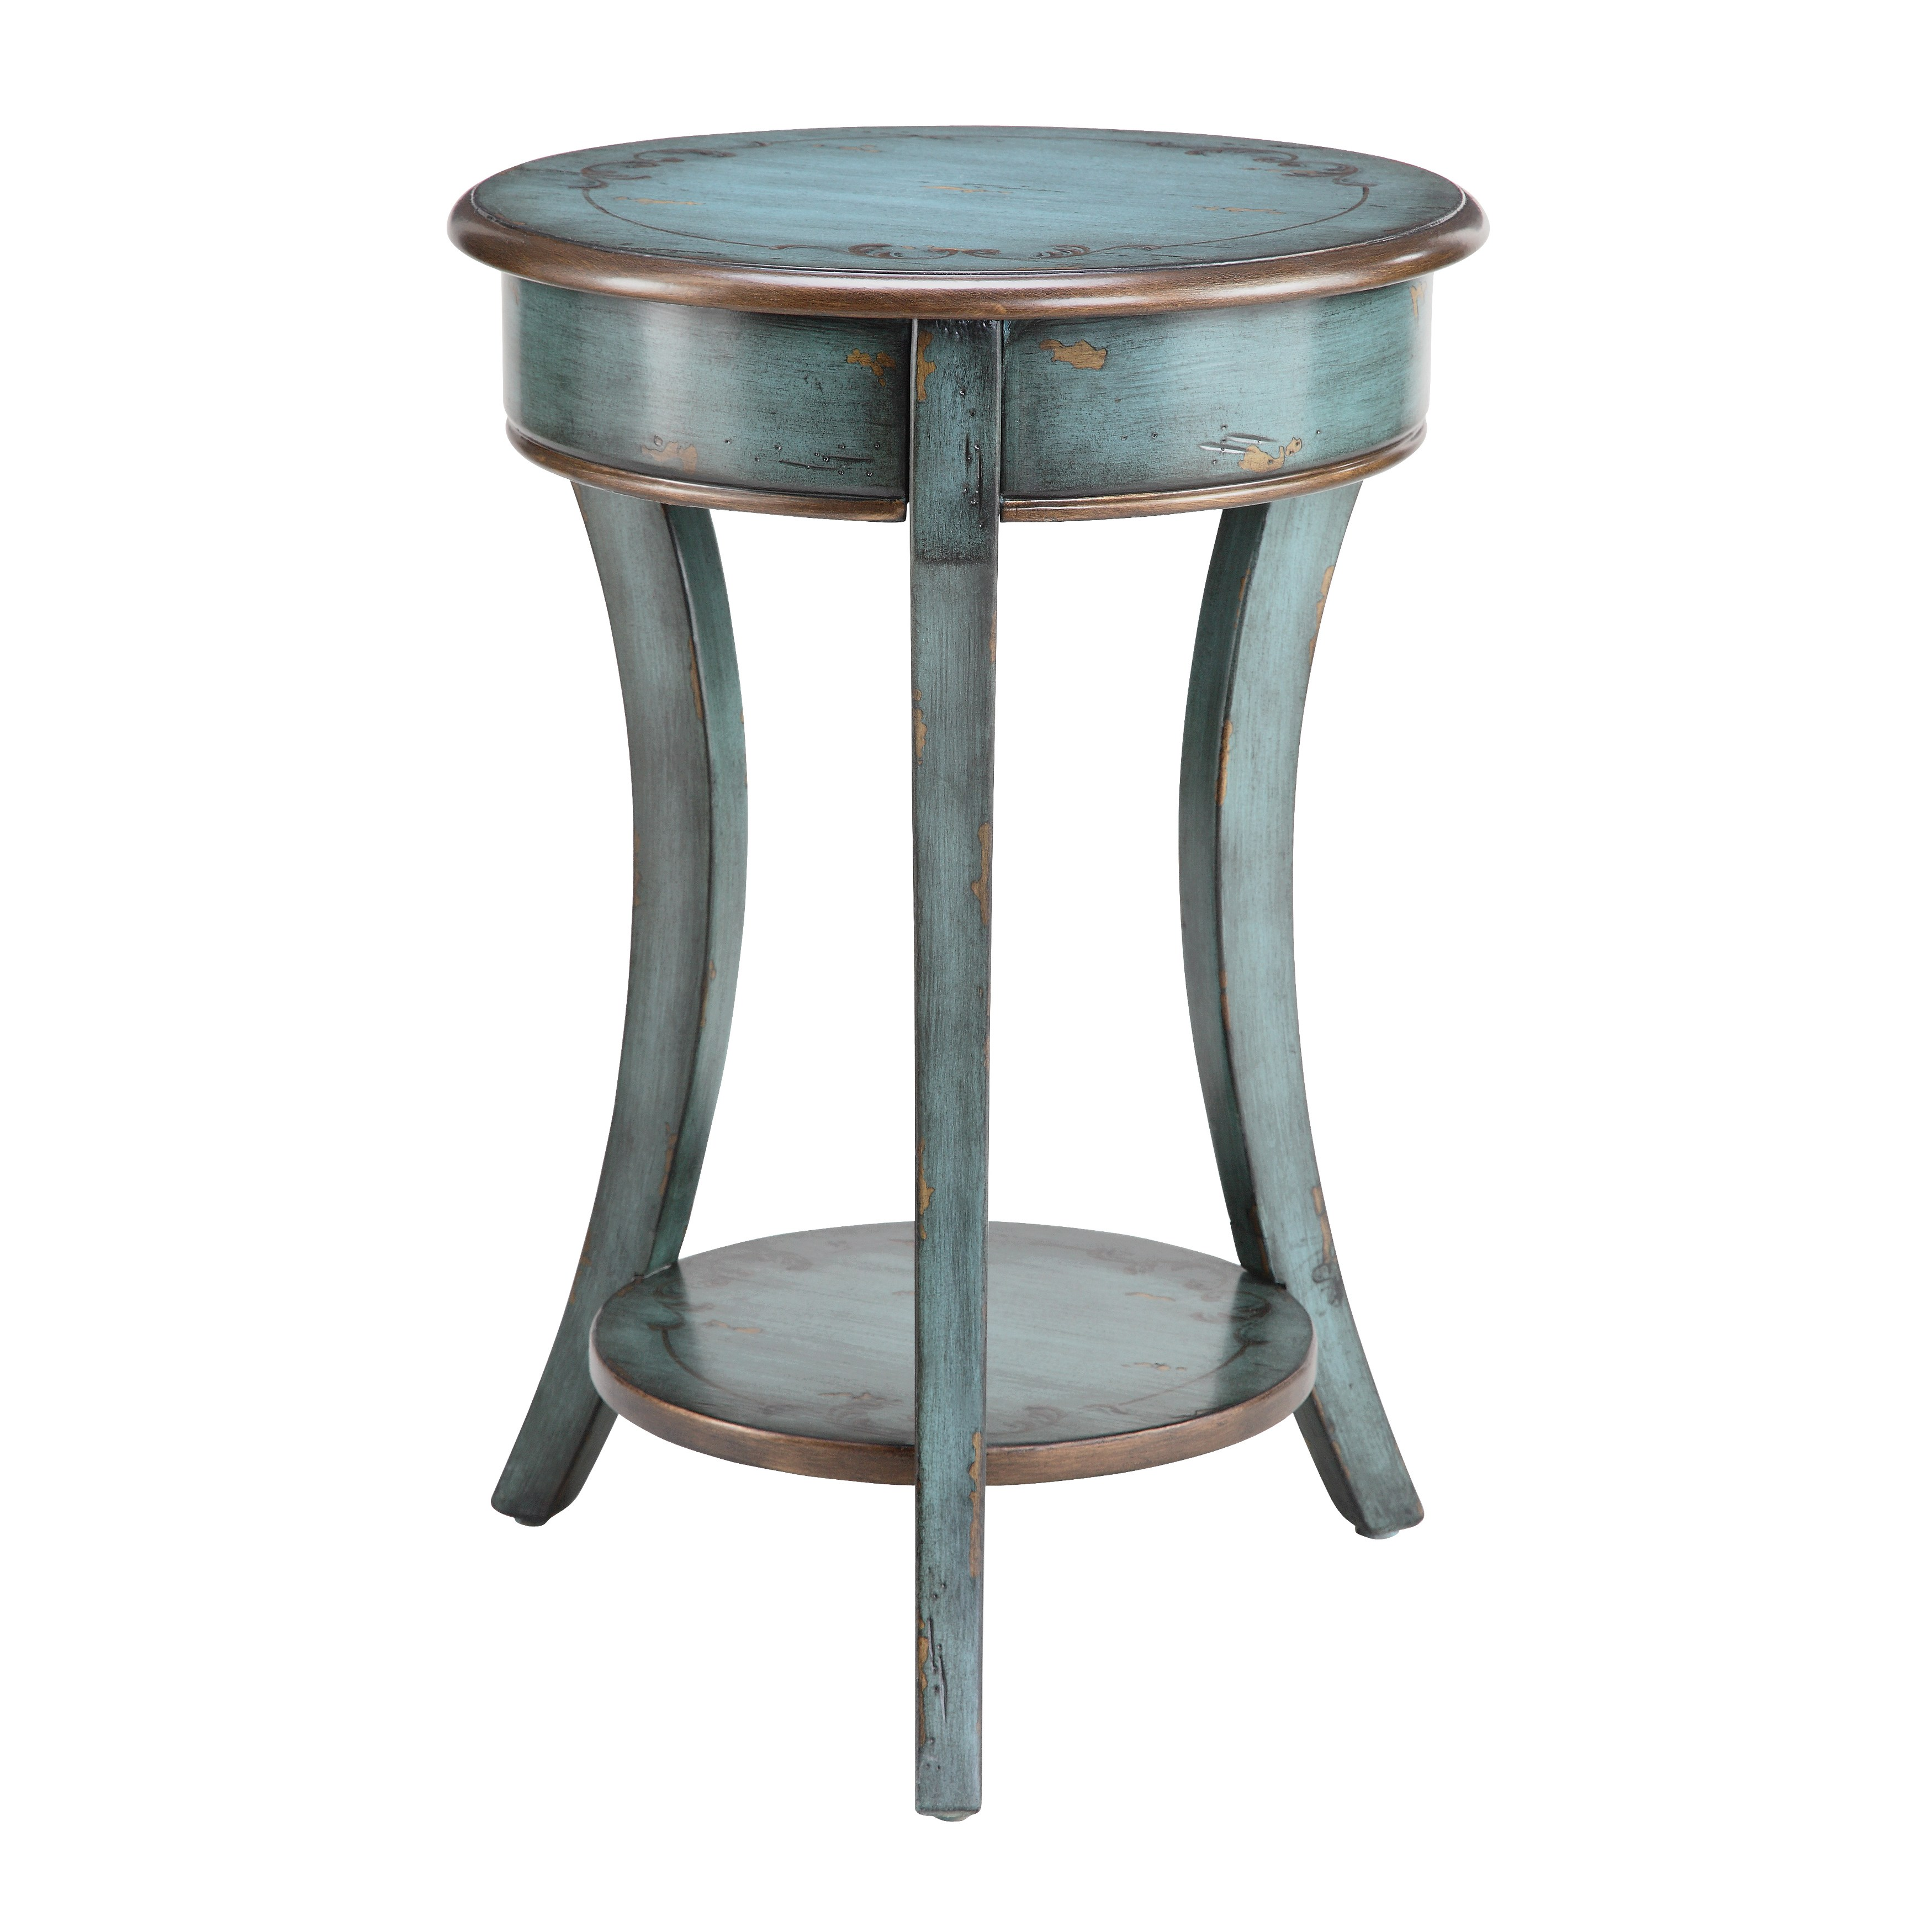 freya round accent table free shipping today stained glass lamp shades target gold base modern vintage furniture concrete coffee antique dining wooden bedside drawers room sets